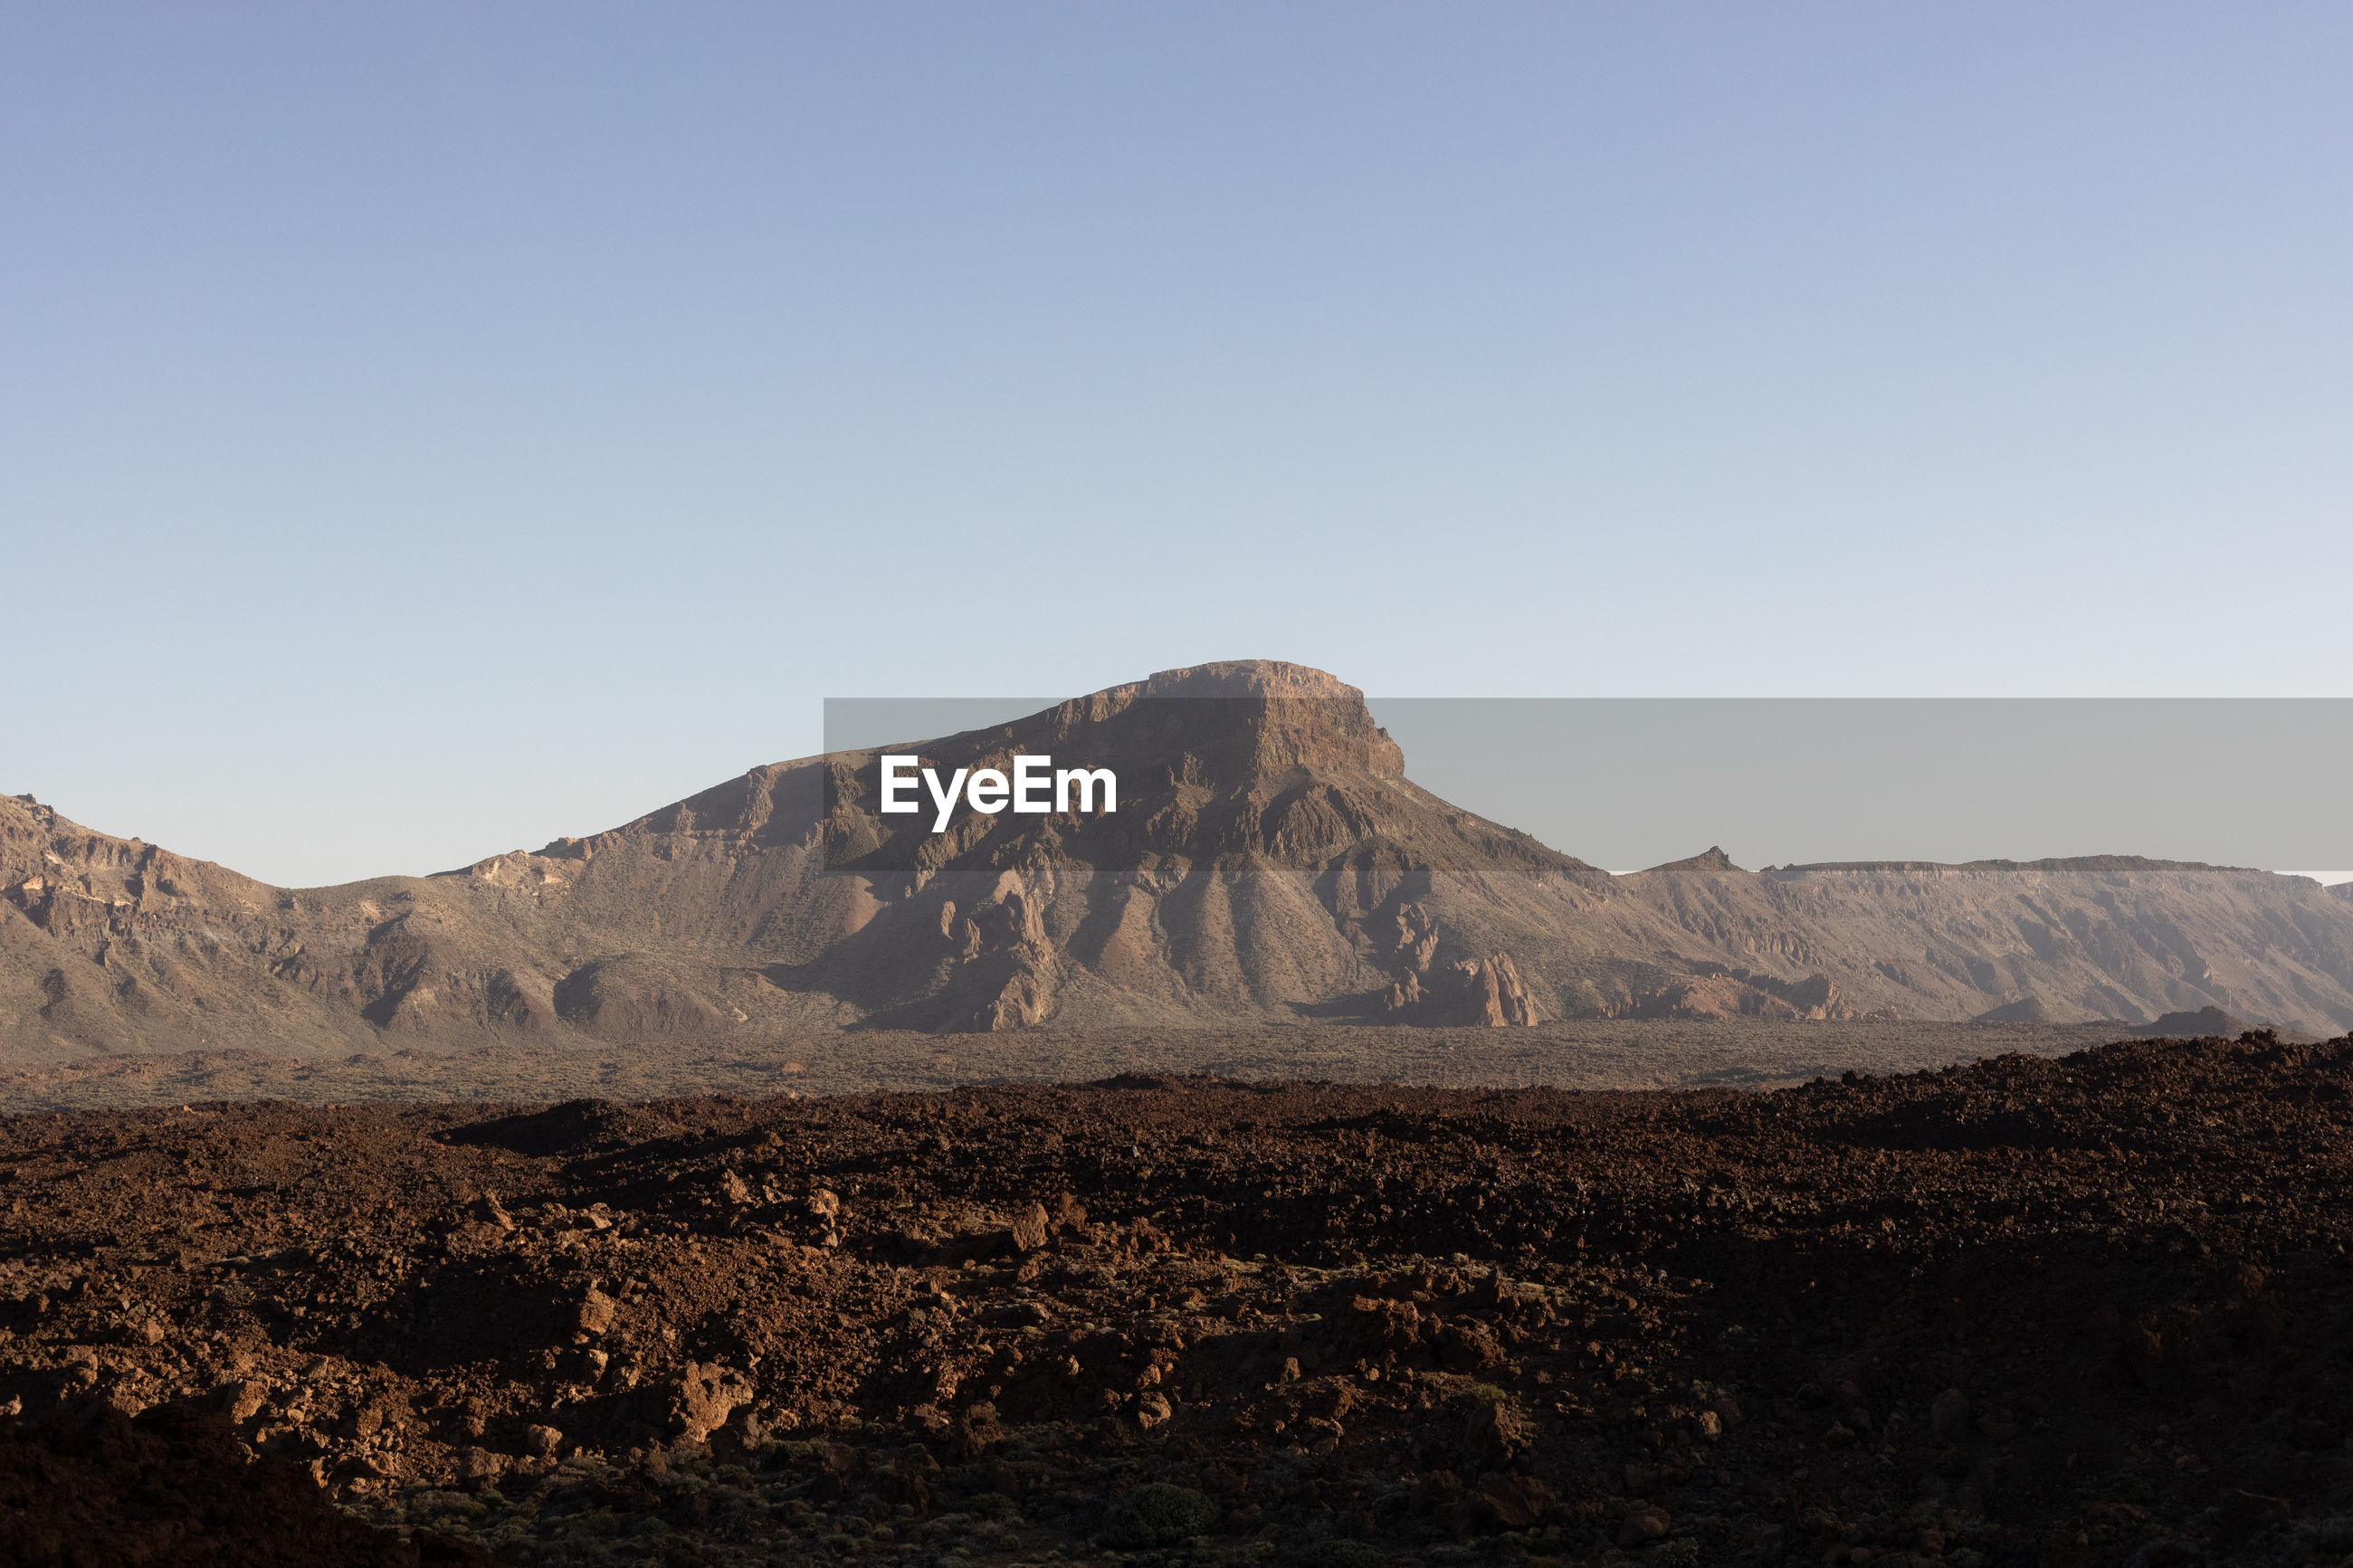 SCENIC VIEW OF VOLCANIC LANDSCAPE AGAINST CLEAR SKY